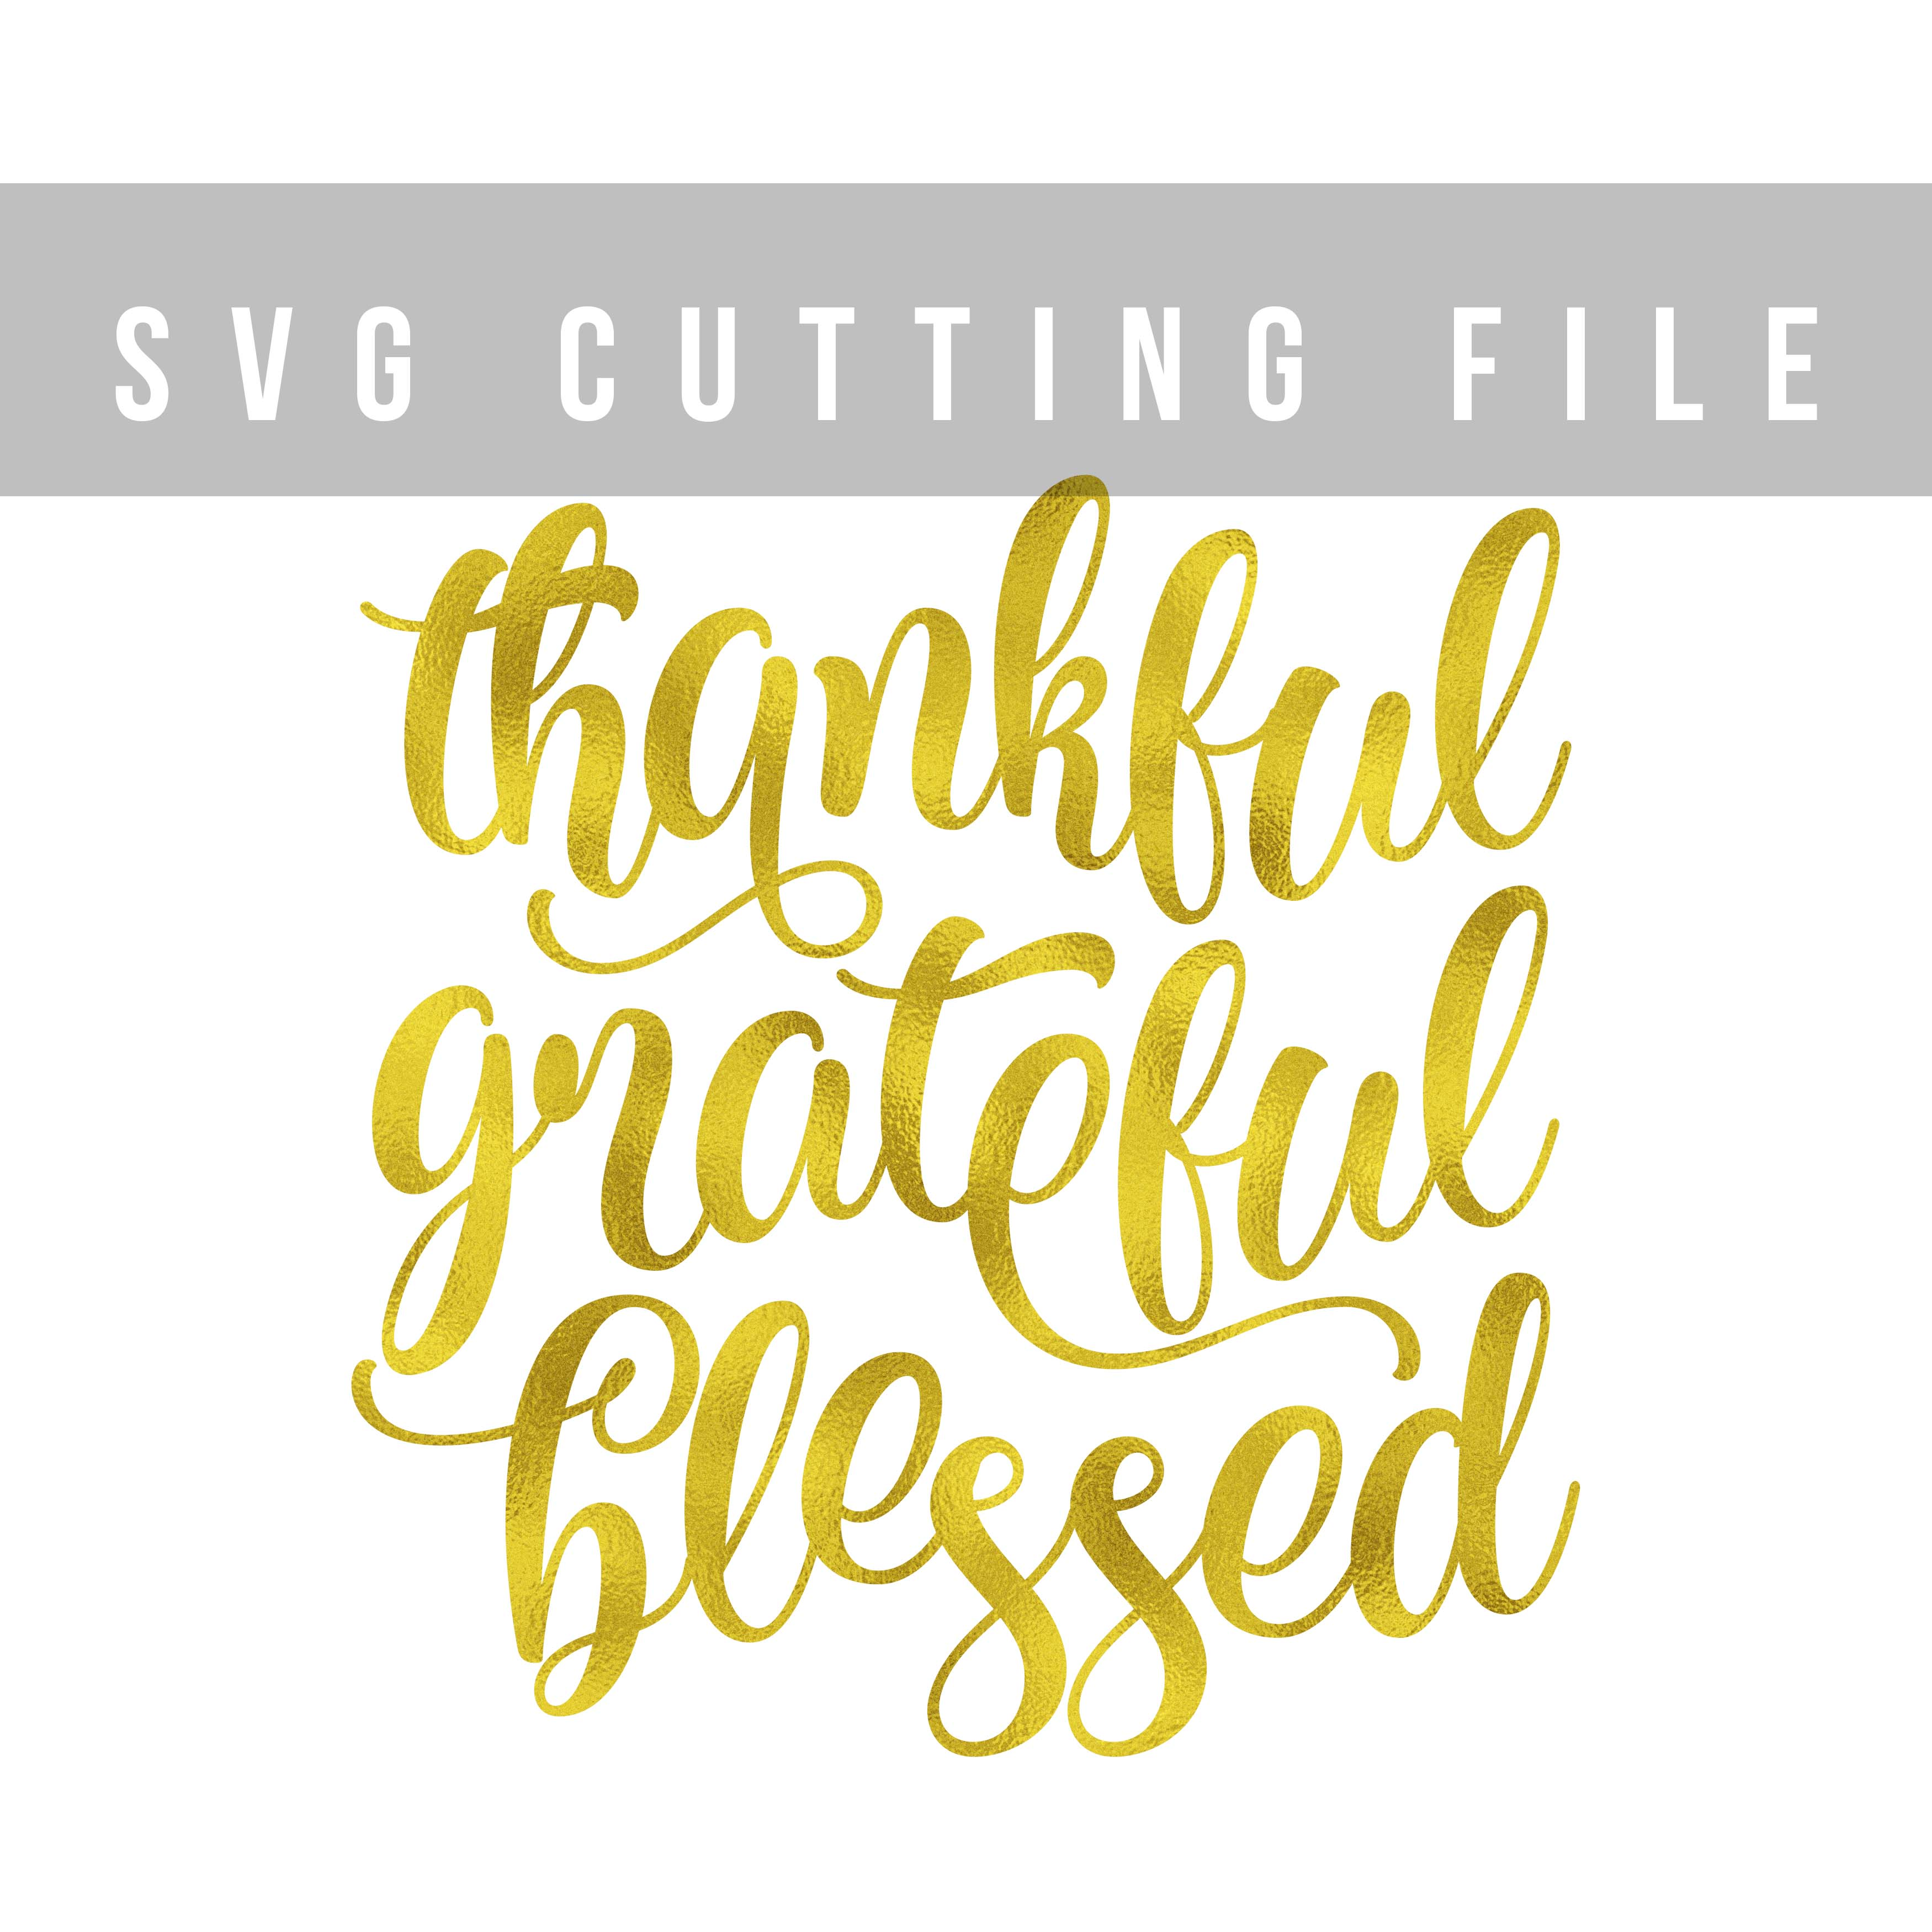 Thankful Grateful Blessed SVG PNG EPS DXF Thanksgiving SVG example image 2